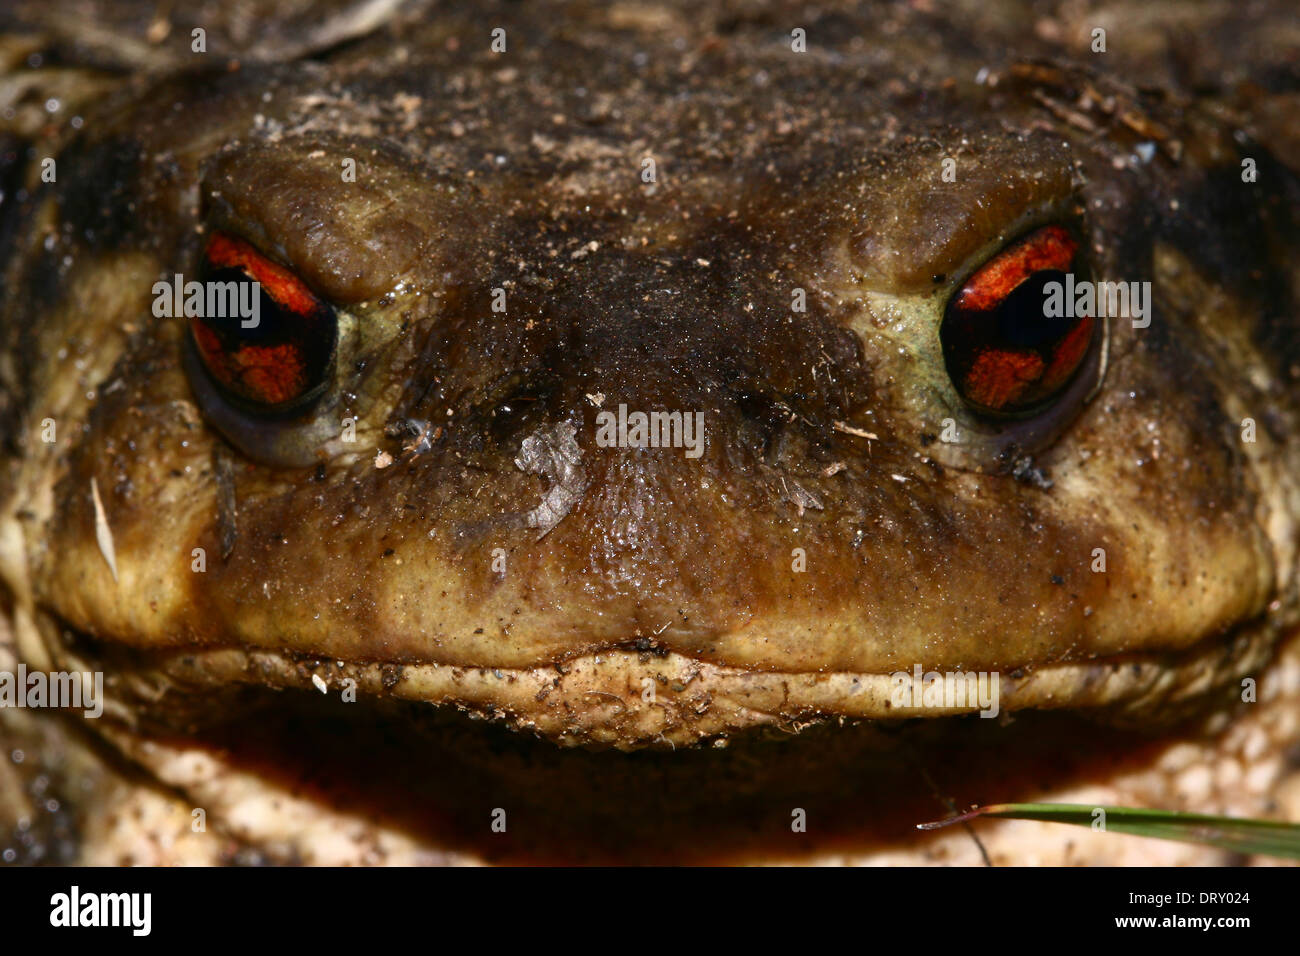 portrait and glance of a large toad - Stock Image